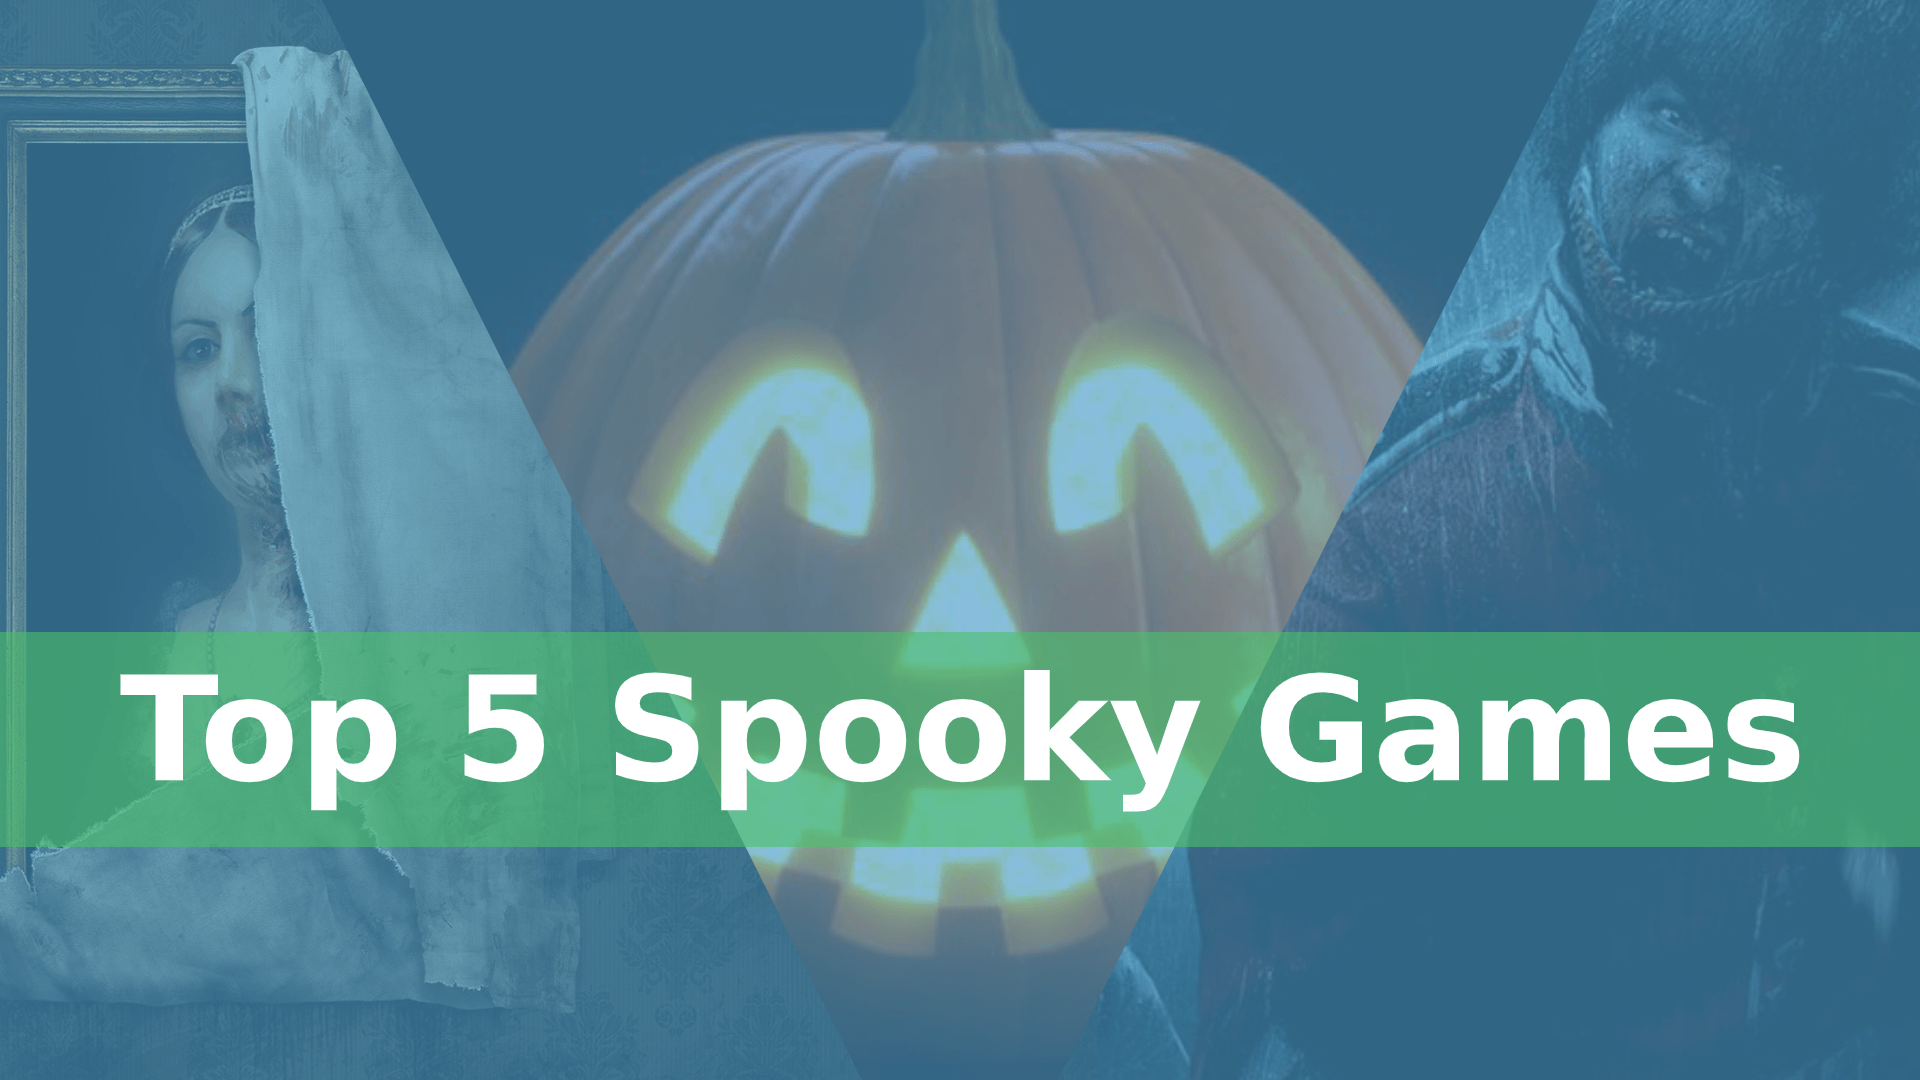 Top 5 Spooky Video Games